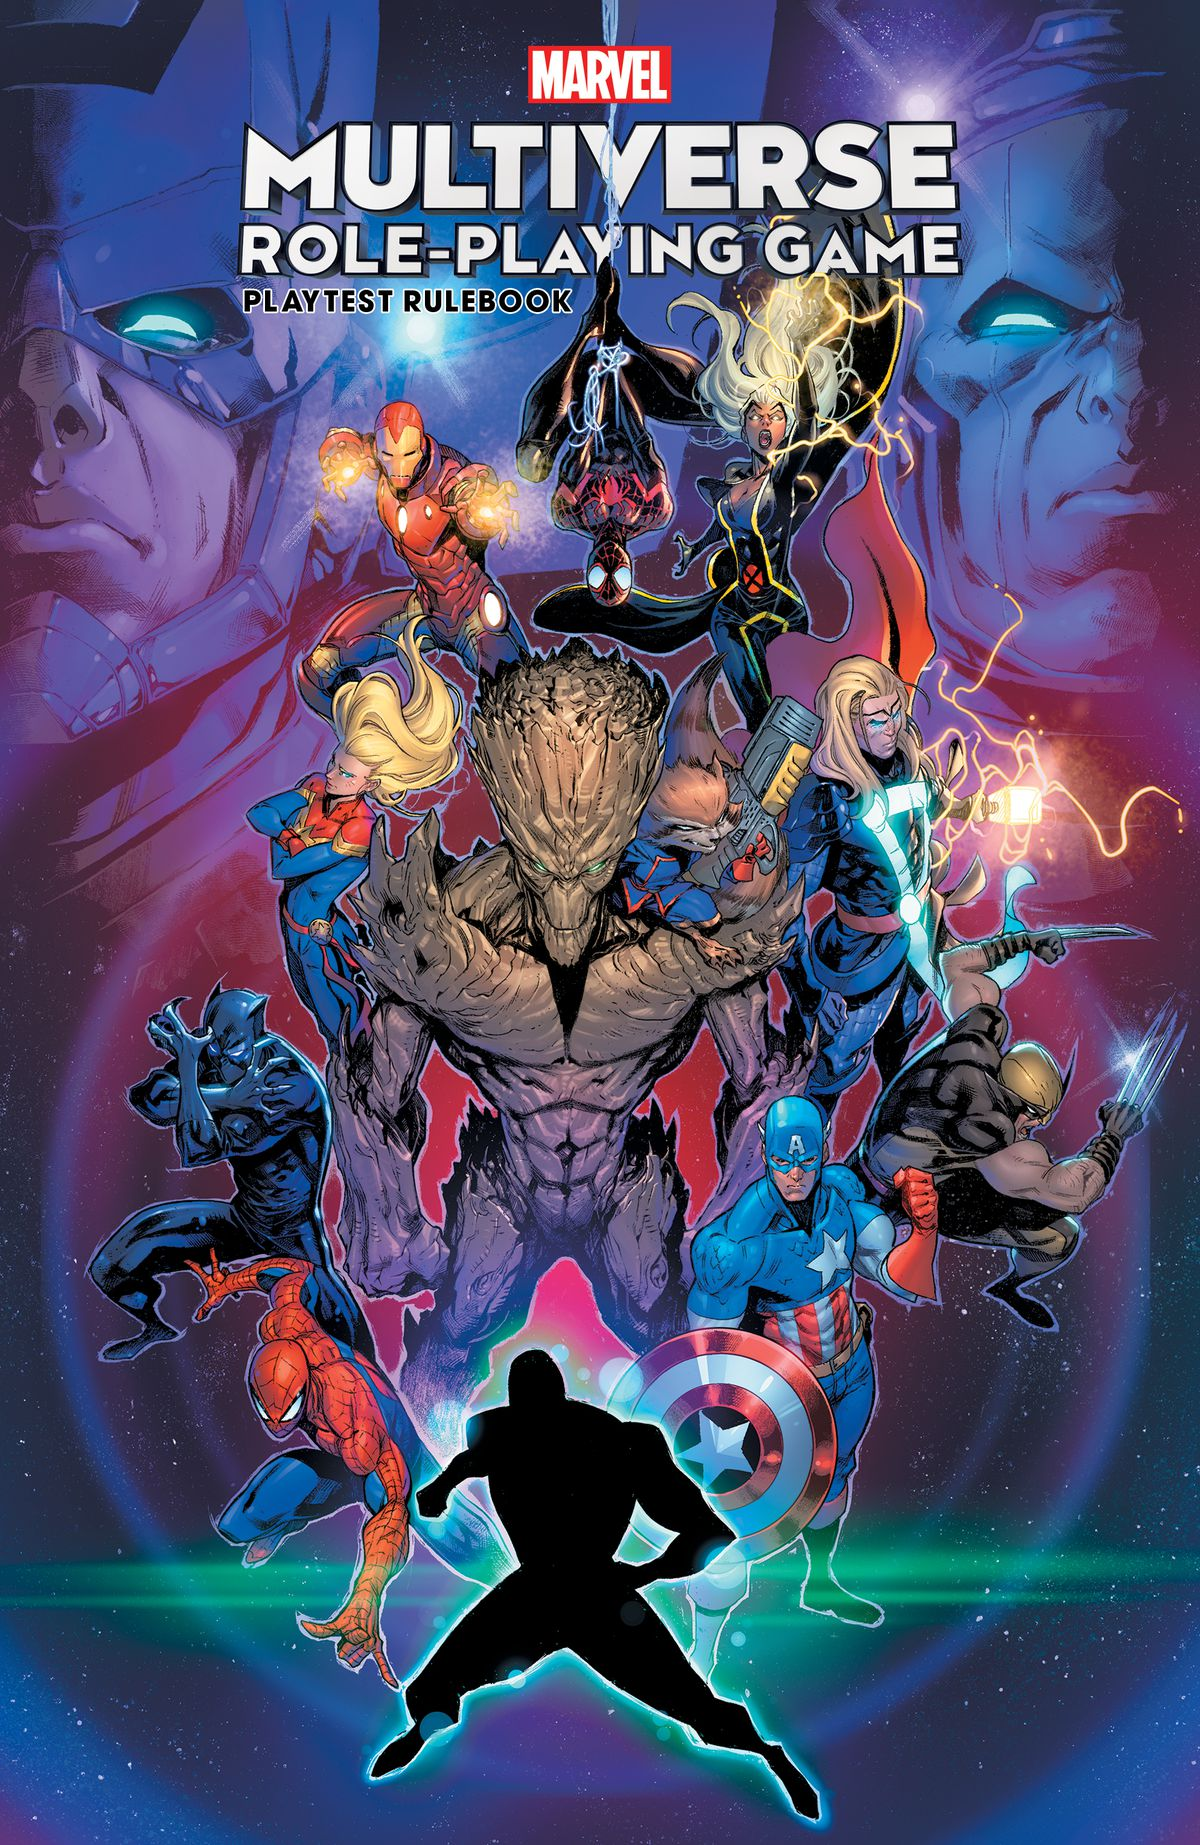 Cover art of the Marvel Multiverse Playtest Rulebook, featuring heroes Spider-Man, Captain America, Black Panther, Captain Marvel, and others.